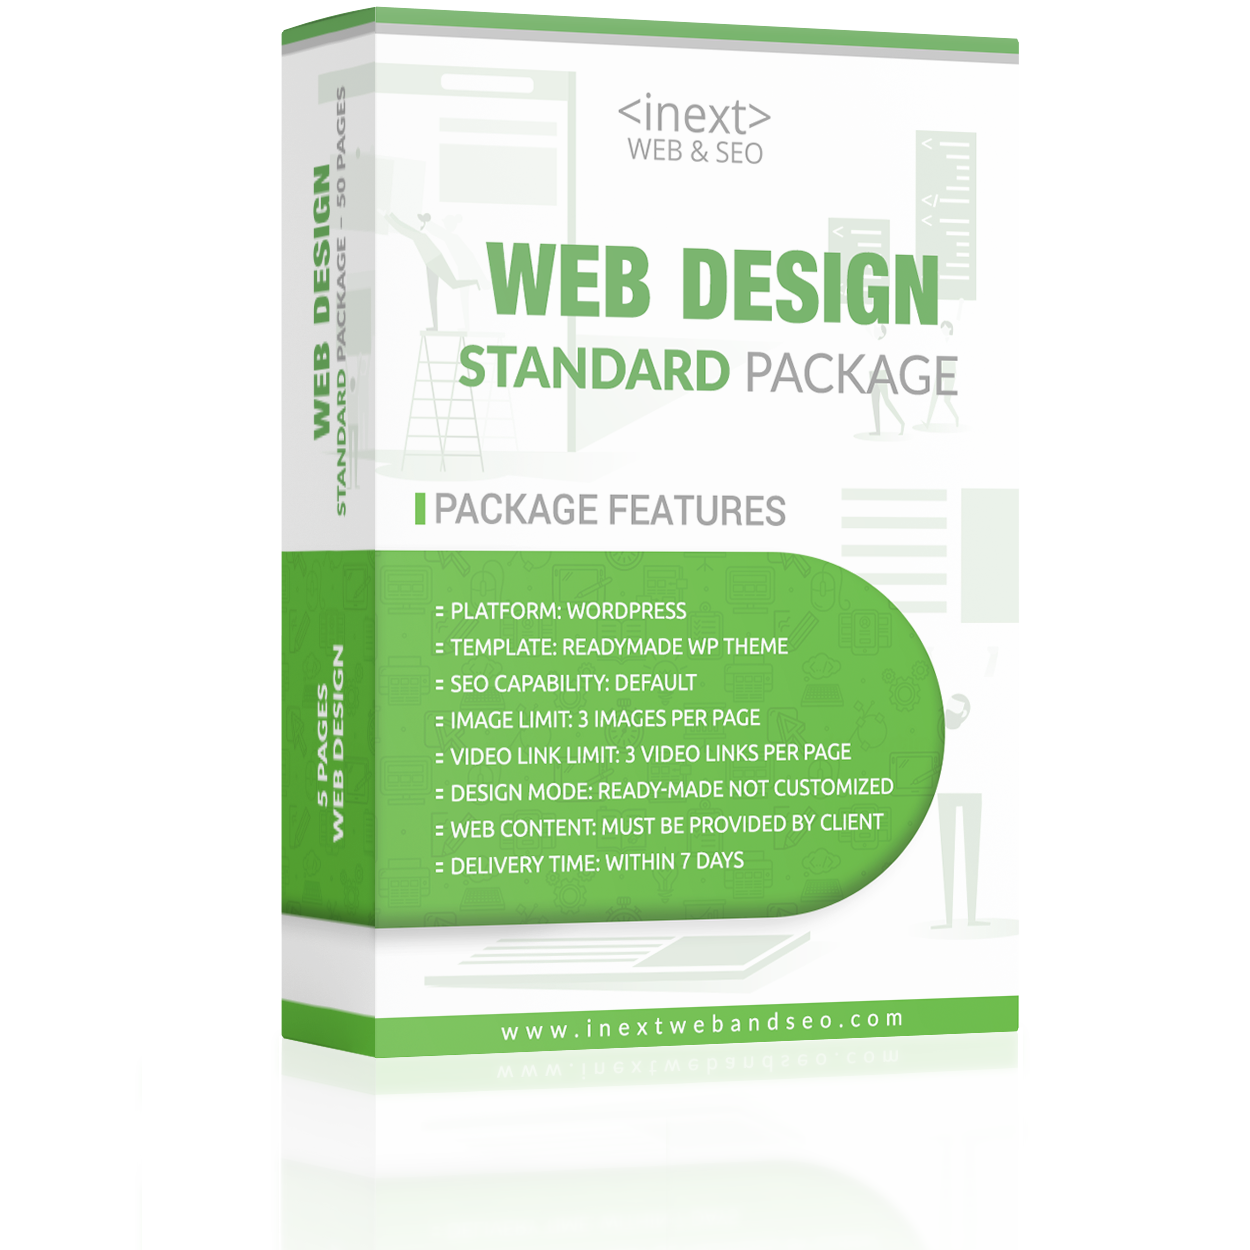 Web design service Houston | iNext Web and SEO